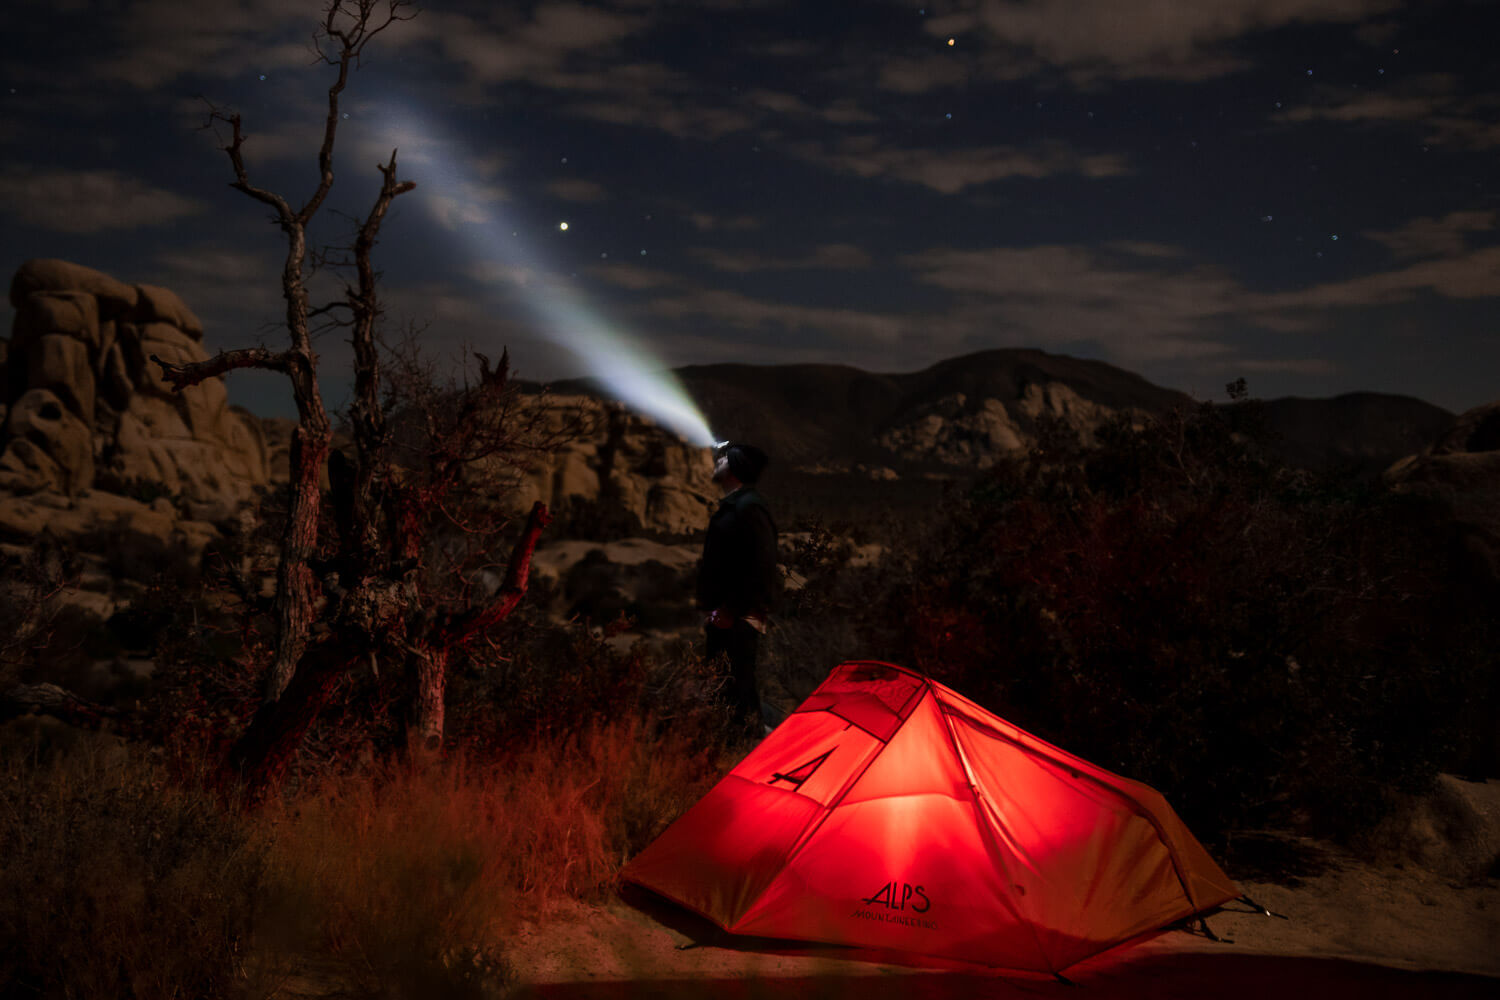 mike-destefano-adventure-lifestyle-photography-camping-joshua-tree